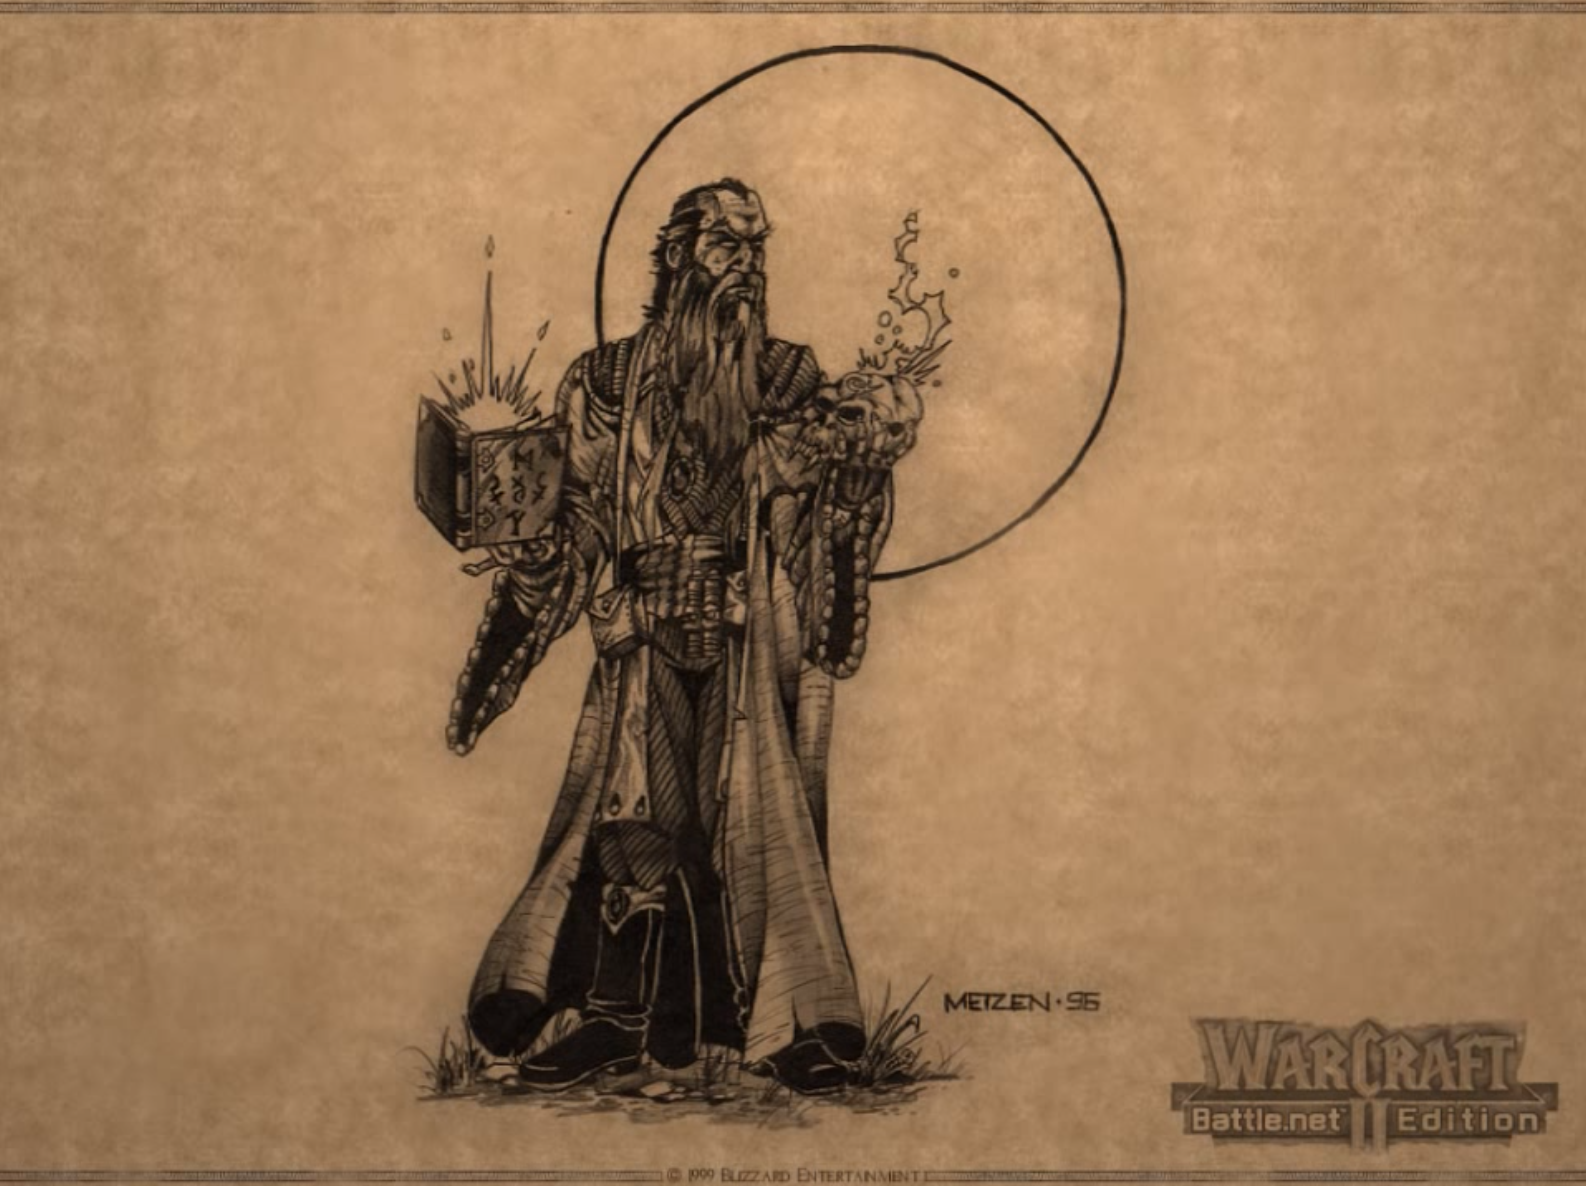 Warcraft 2 Artwork Looks Like A Human Mage Fizzling With The Fel